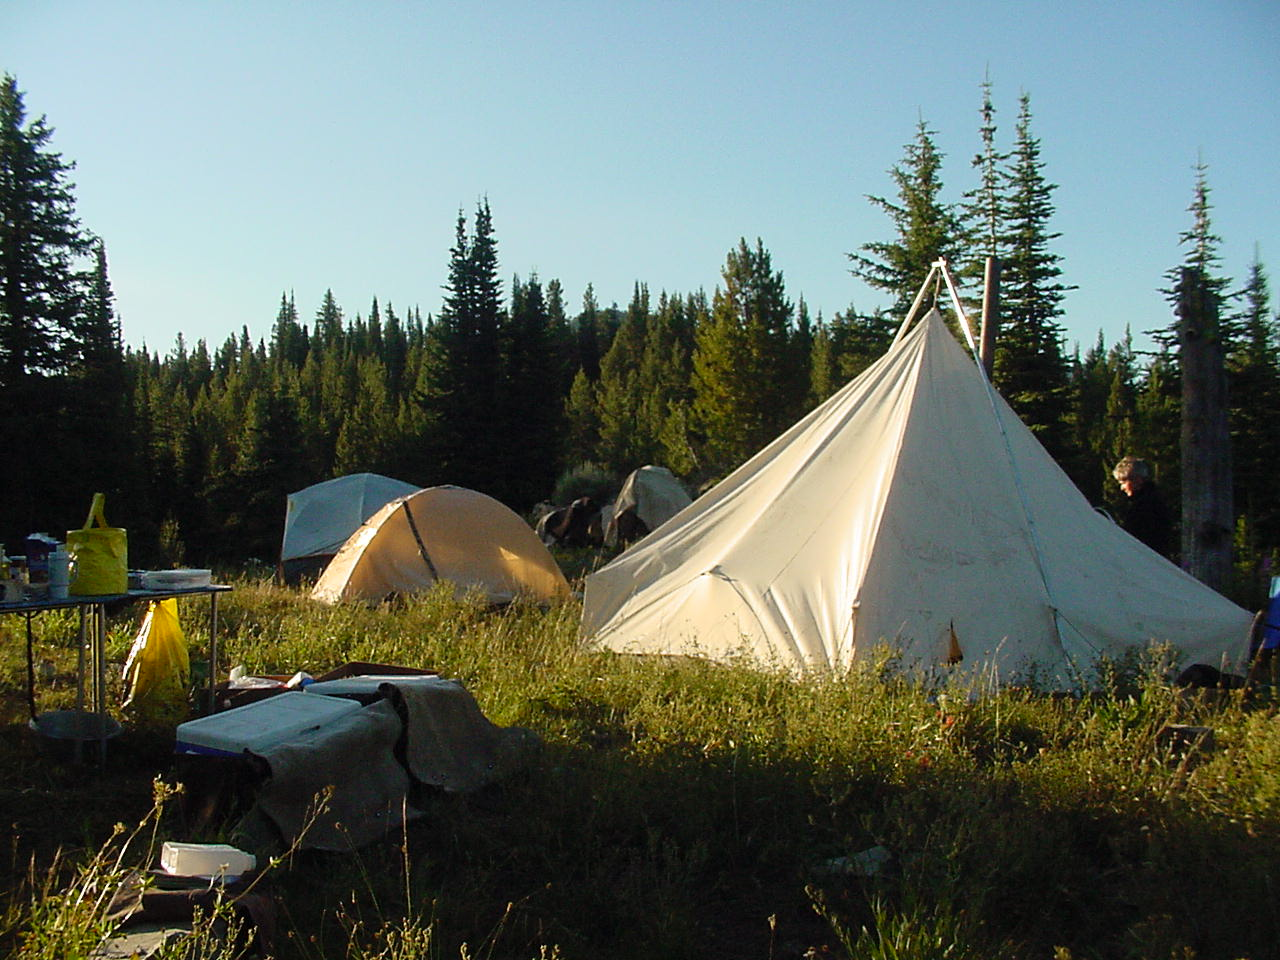 Wilderness camp with wall tents, tables and other gear